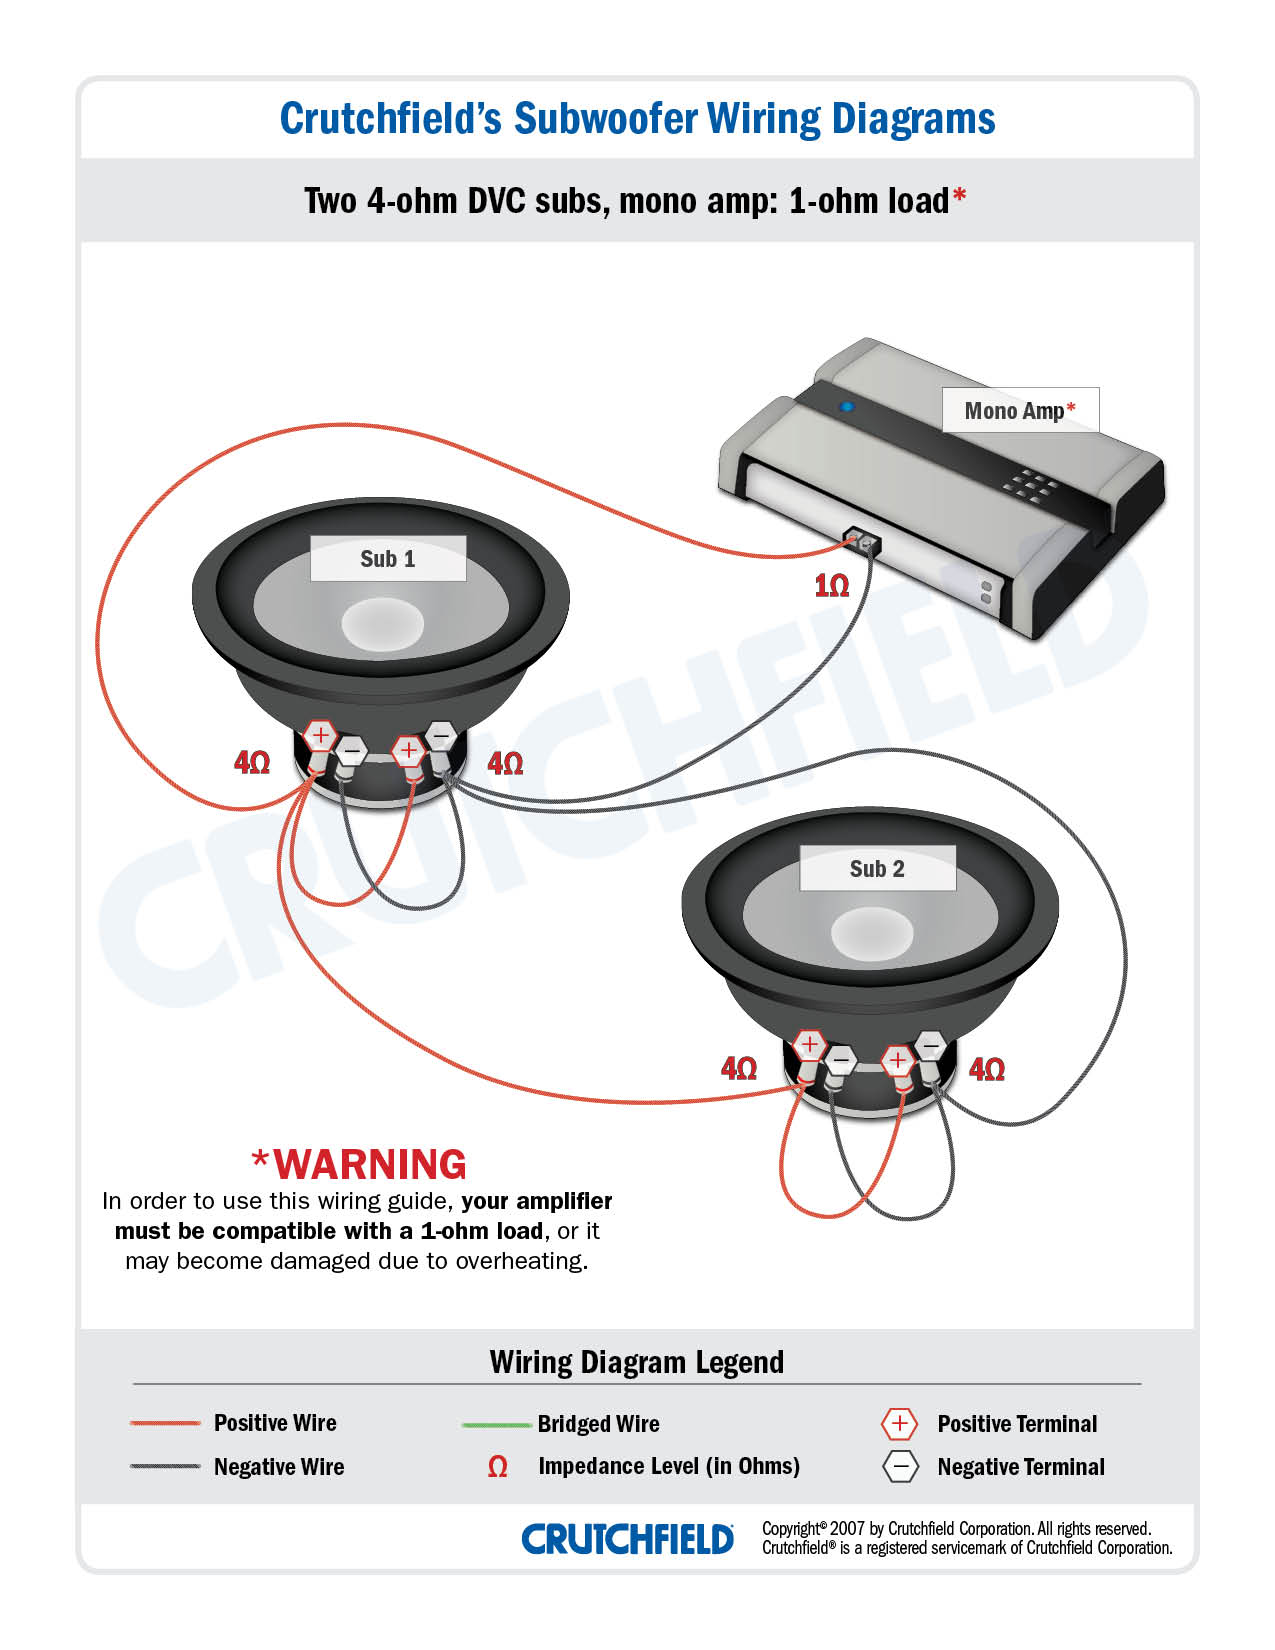 2 DVC 4 ohm mono low imp subwoofer wiring diagrams crutchfield sub wiring diagrams at eliteediting.co